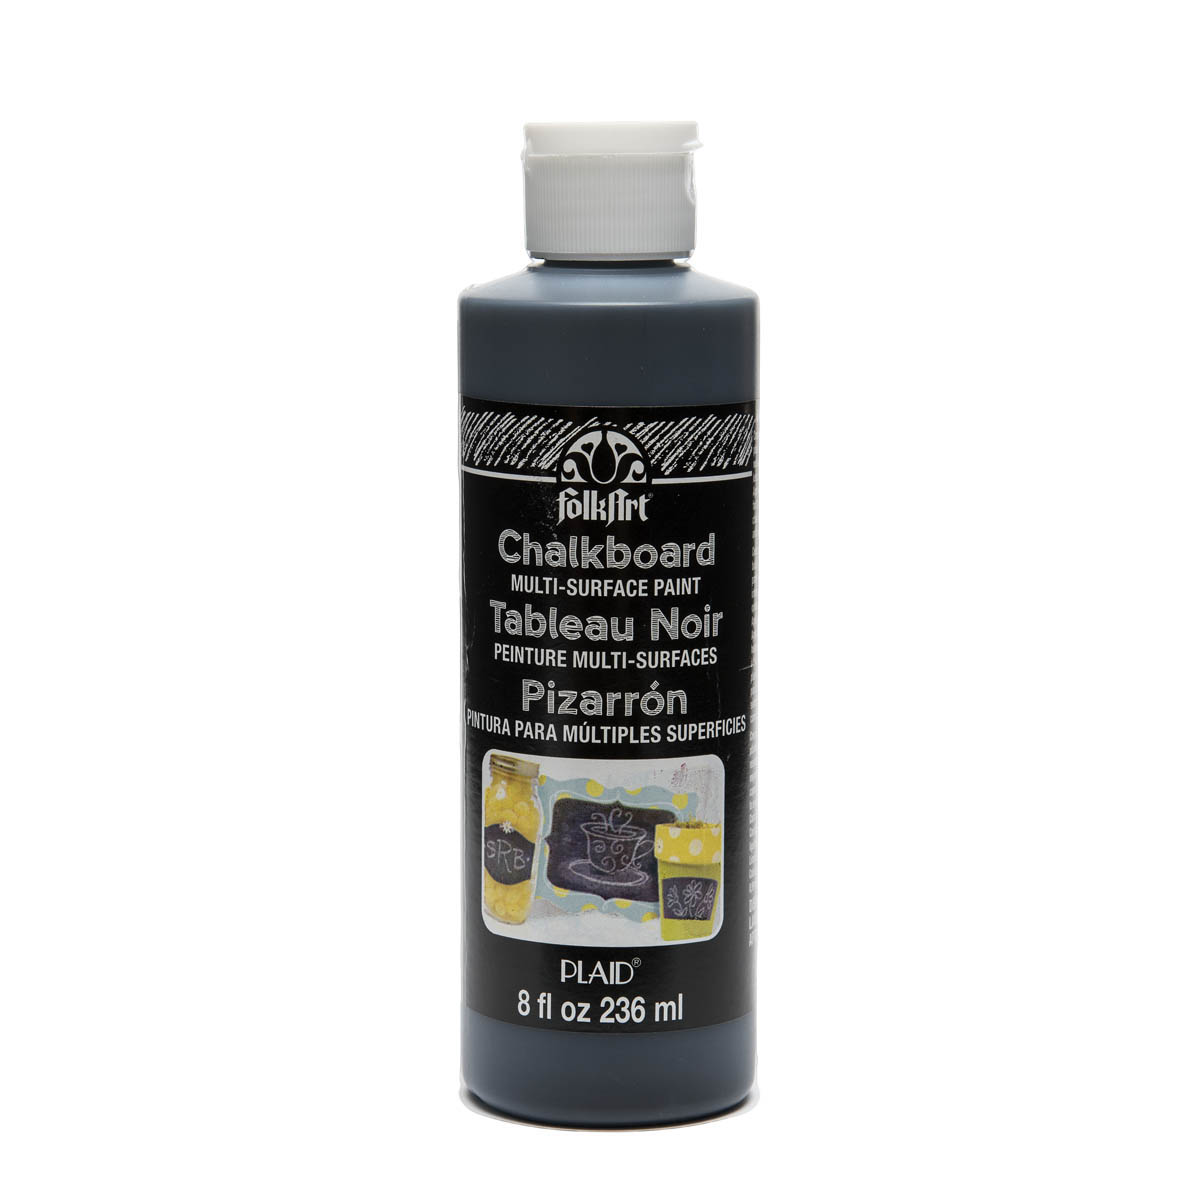 FolkArt ® Chalkboard Multi-Surface Paint - Black, 8 oz.